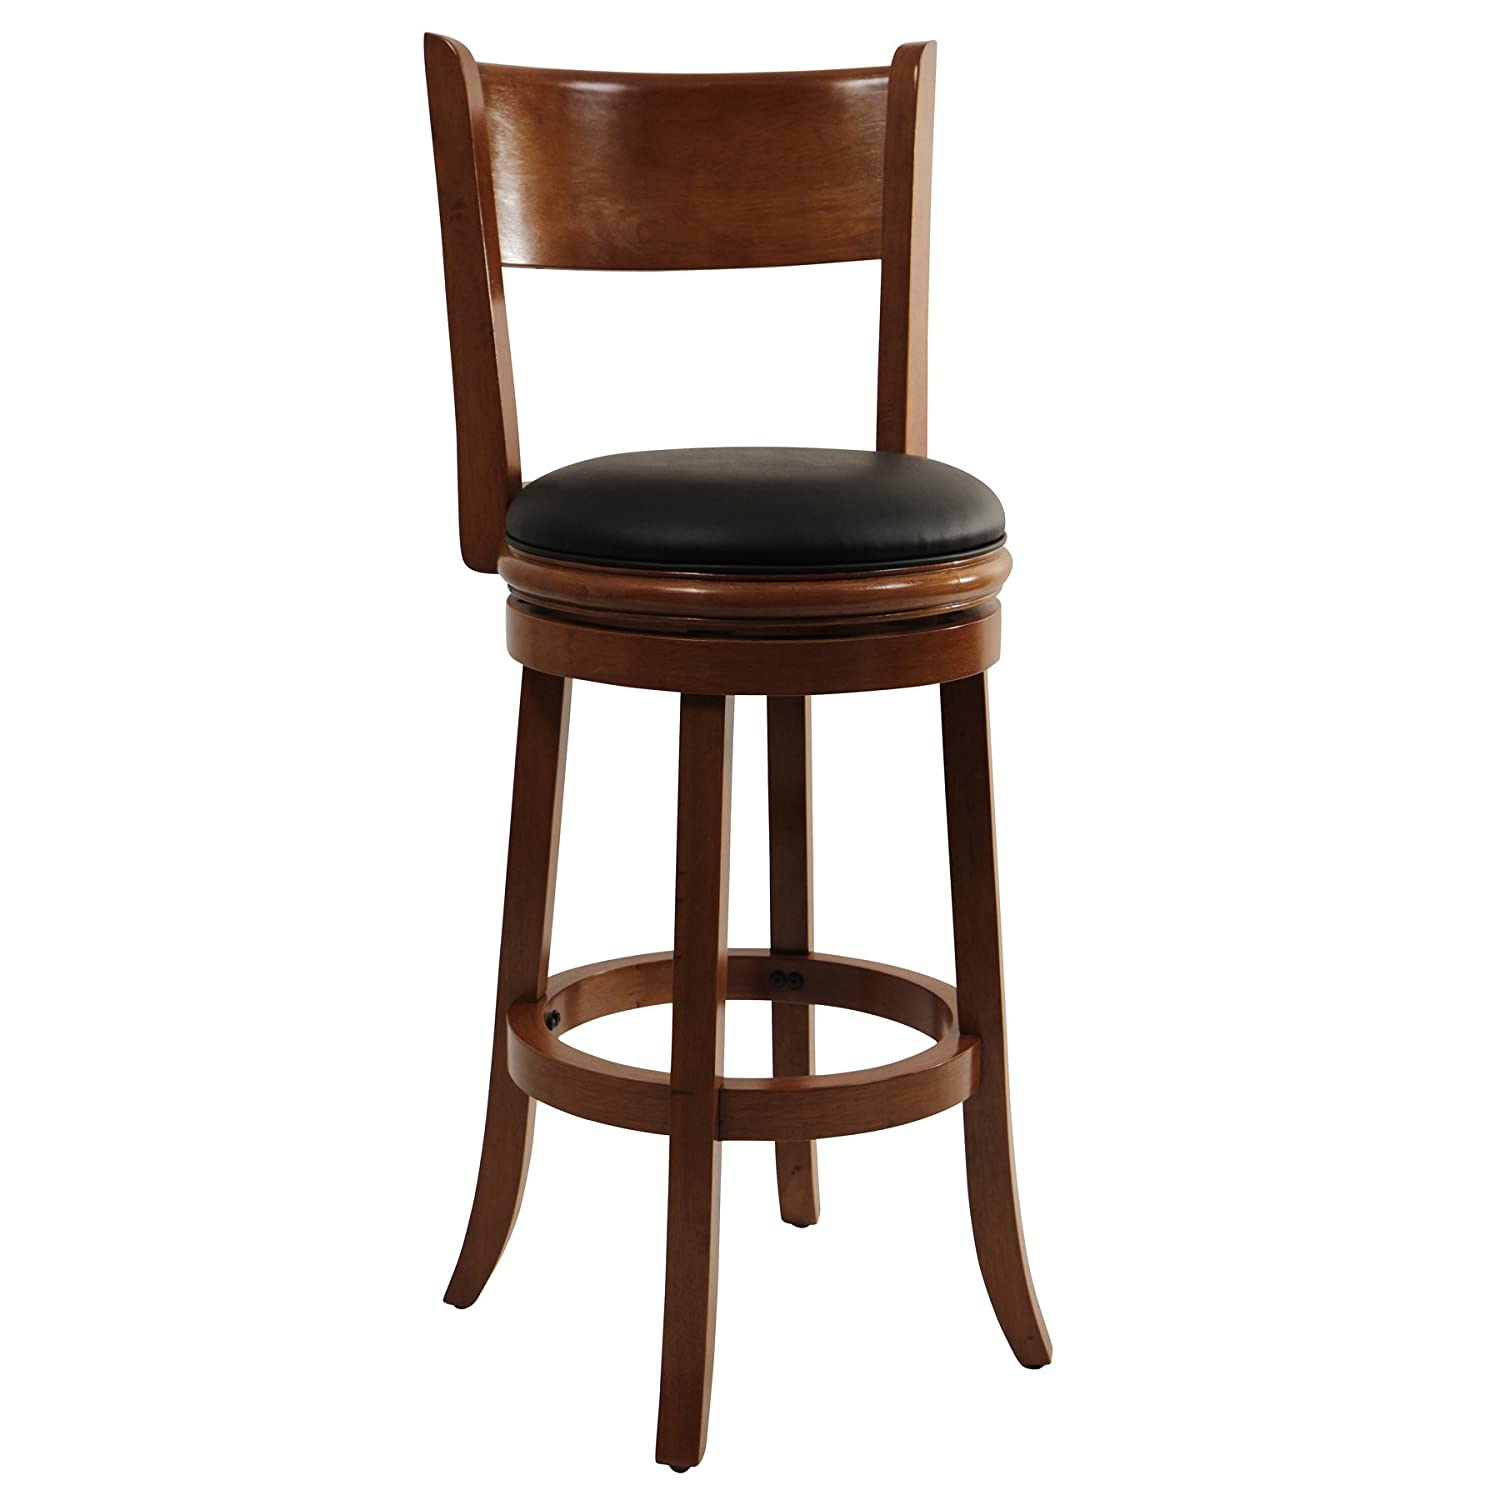 Amazon.com Boraam 45129 Palmetto Bar Height Swivel Stool 29-Inch Fruitwood Kitchen u0026 Dining  sc 1 st  Amazon.com & Amazon.com: Boraam 45129 Palmetto Bar Height Swivel Stool 29-Inch ... islam-shia.org